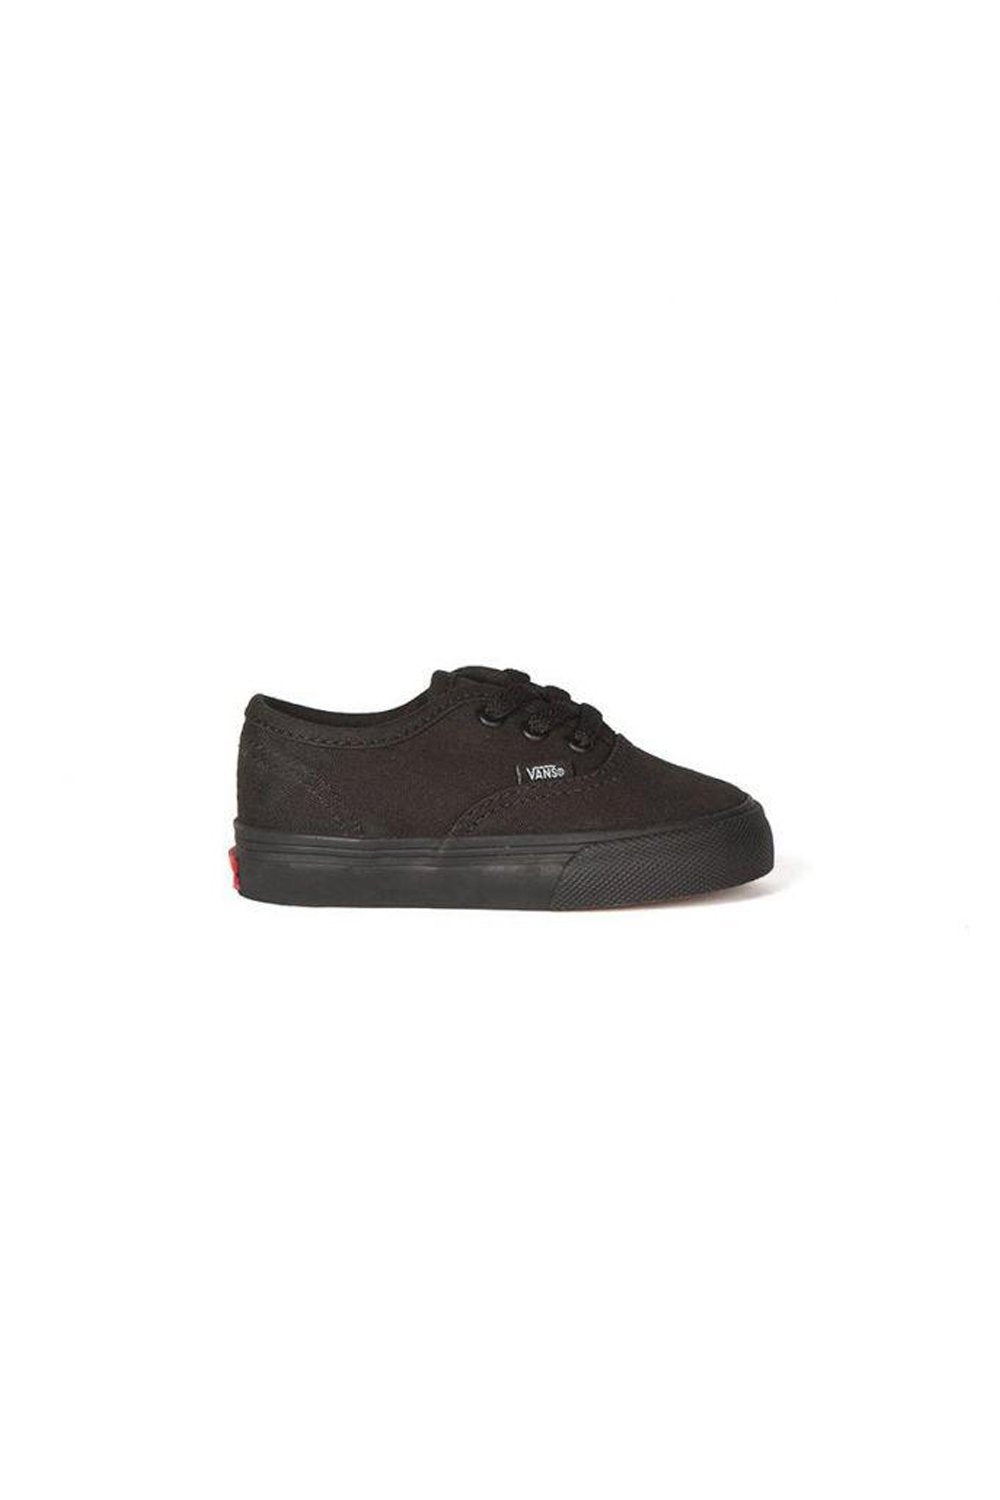 Vans Authentic Toddler Black / Black Shoe